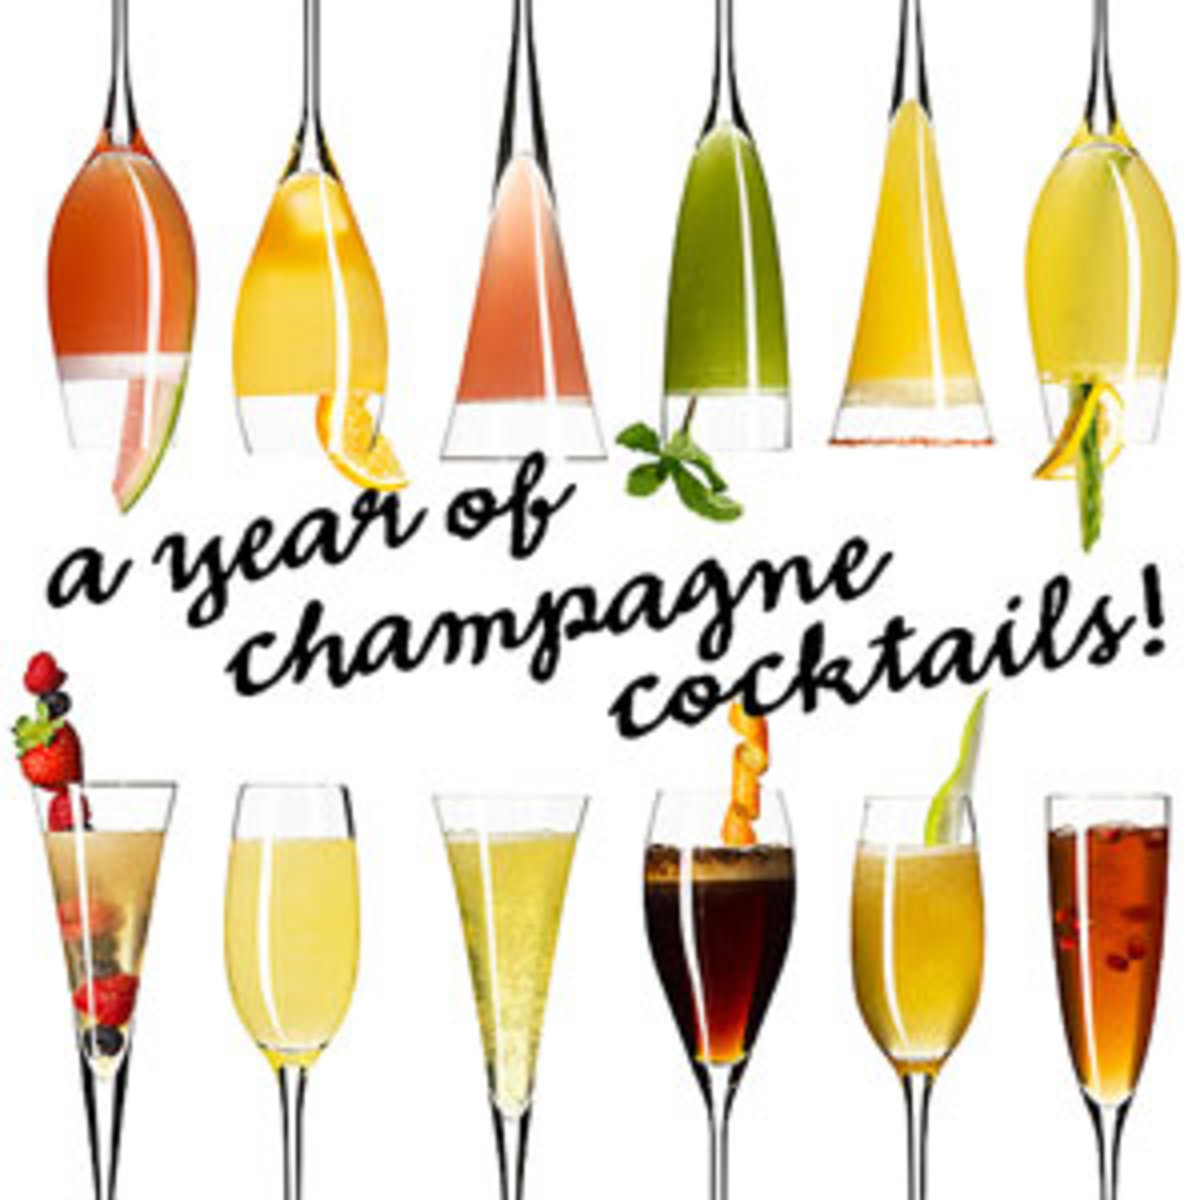 Champagne clipart champagne cocktail.  seasonal sparkling drinks